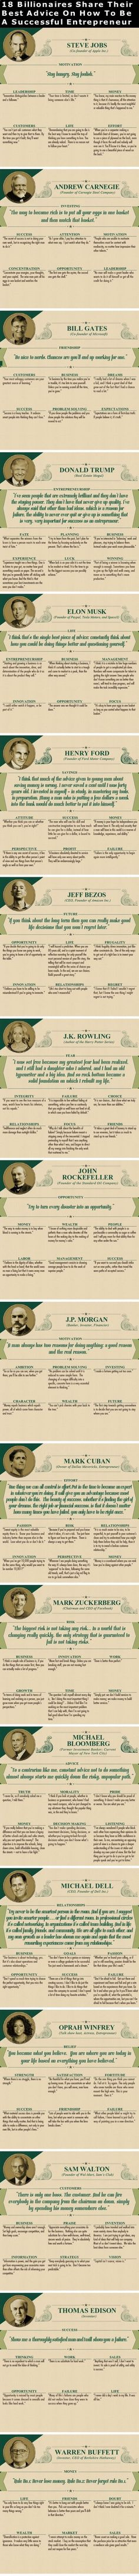 Positive Quotes 18 Billionaires Share Their Best Advice On How To Become A Successful Entrepreneur success business tips facts self improvement wealth billionaires infographics entrepreneur self help tips on self improvement entrepreneurship entrepreneur tips tips for entrepreneur